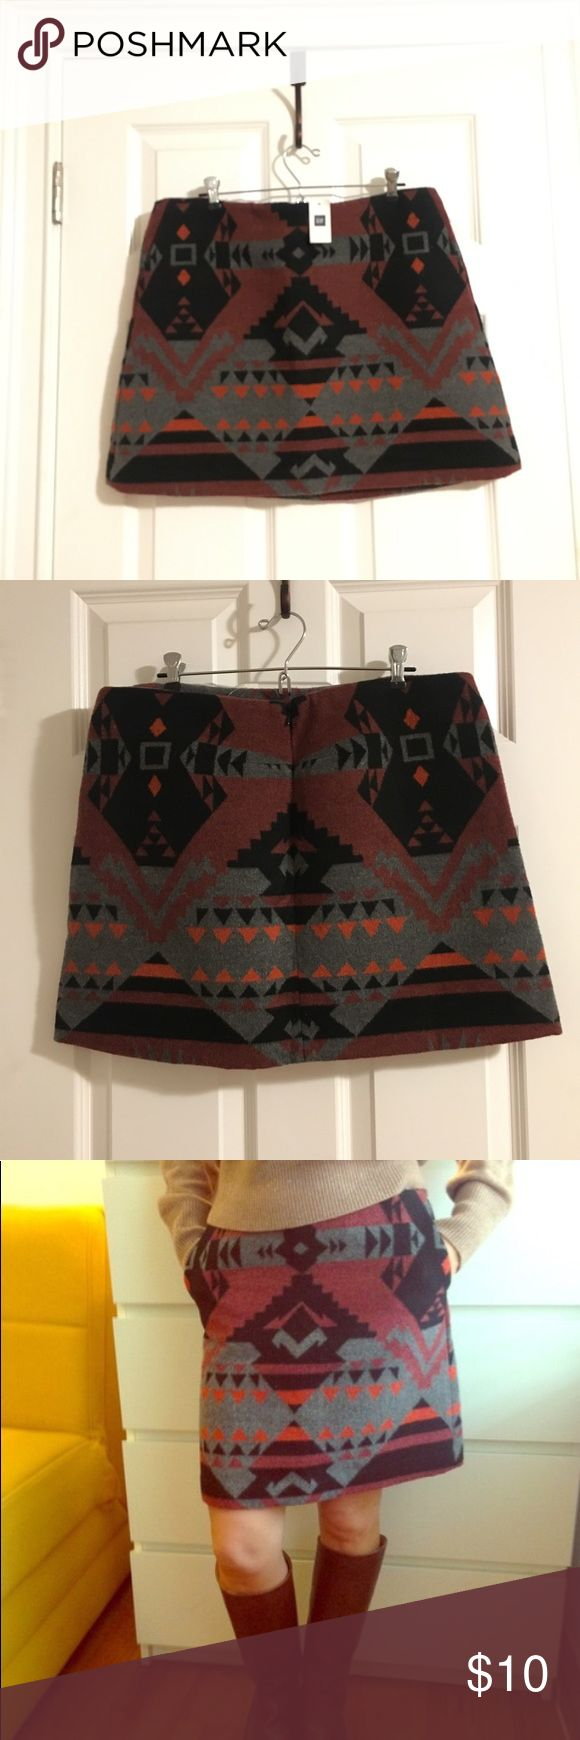 NWT Gap Aztec print skirt On trend Aztec print skirt that I LOVE. Bought from another posher but sadly too snug in the hips for me. Wool & poly blend   Waist is 34 inches   On Body shot taken from the World Wide Web but not the same size as this one! GAP Skirts Mini